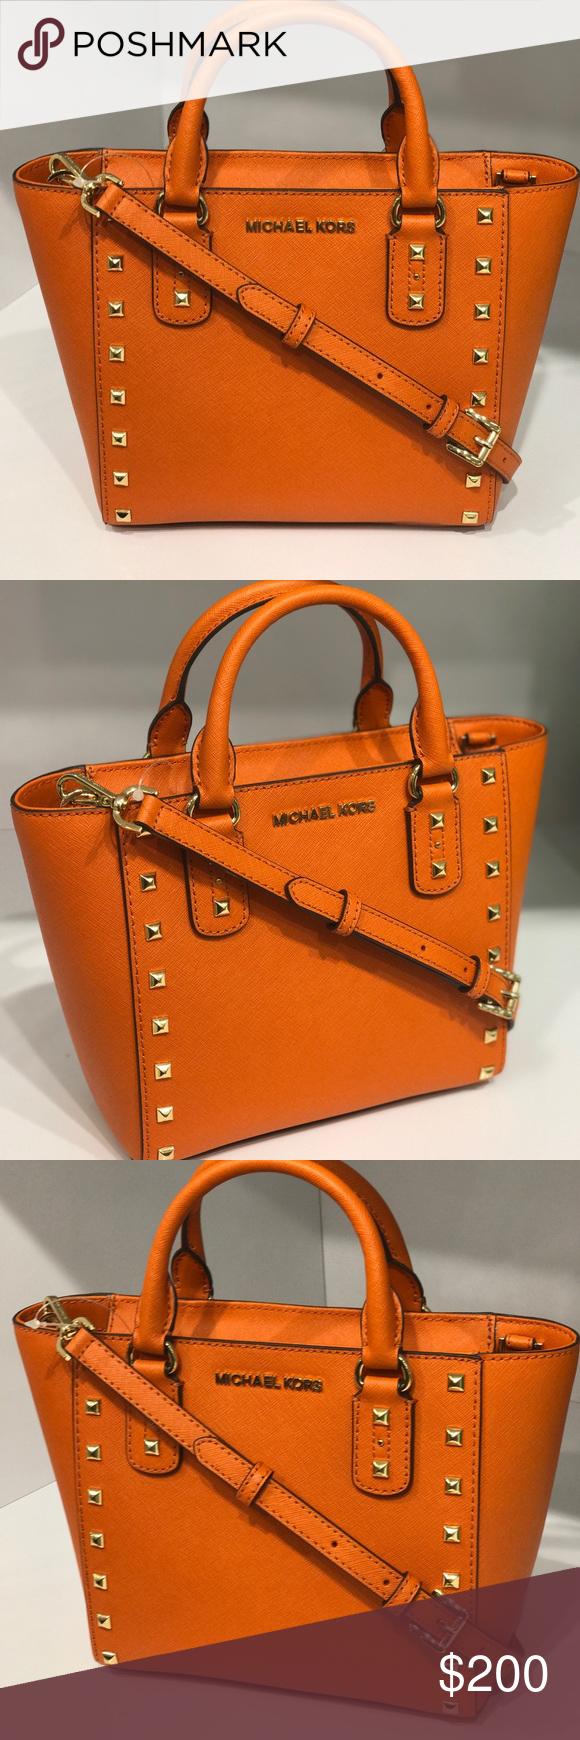 43ad94eb112b14 Michael Kors sandrine Stud Leather SM satchel bag Size: Small Satchel / crossbody/messenger -Michael Kors nameplate in front -Tags attached .